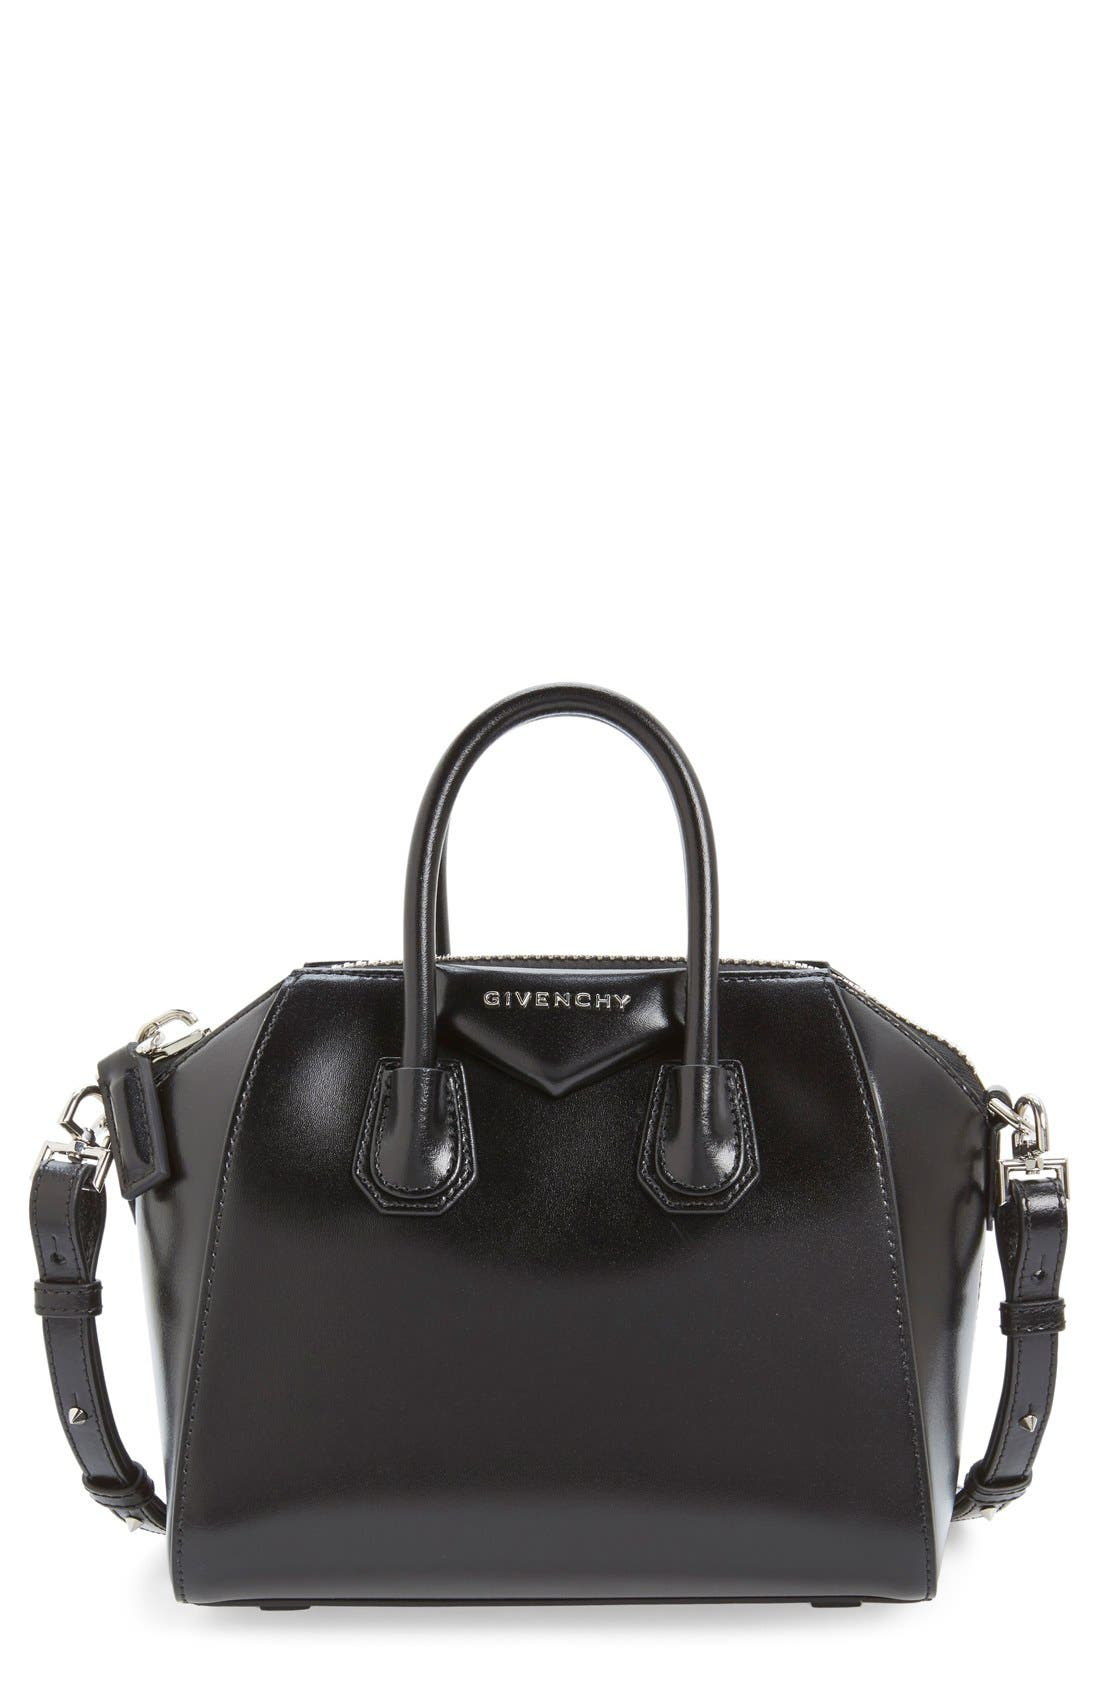 Givenchy 'Mini Antigona' Box Leather Satchel